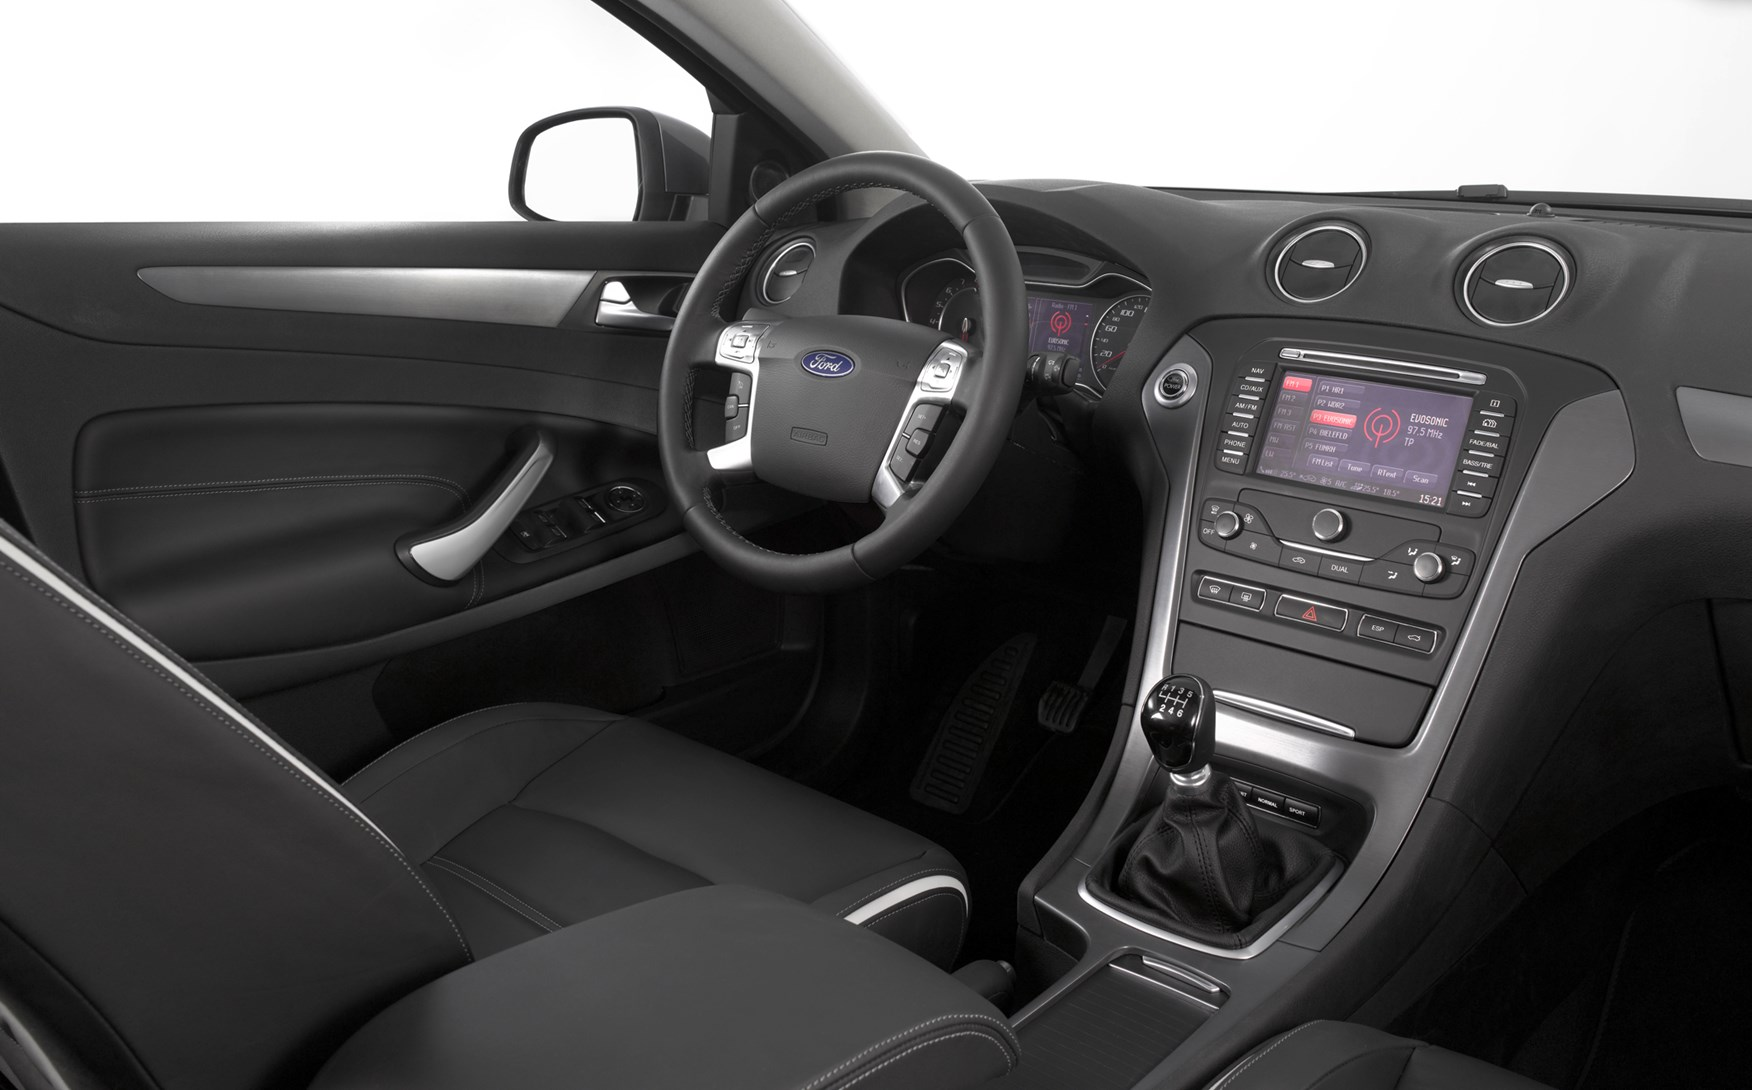 2010 Ford Mondeo #24